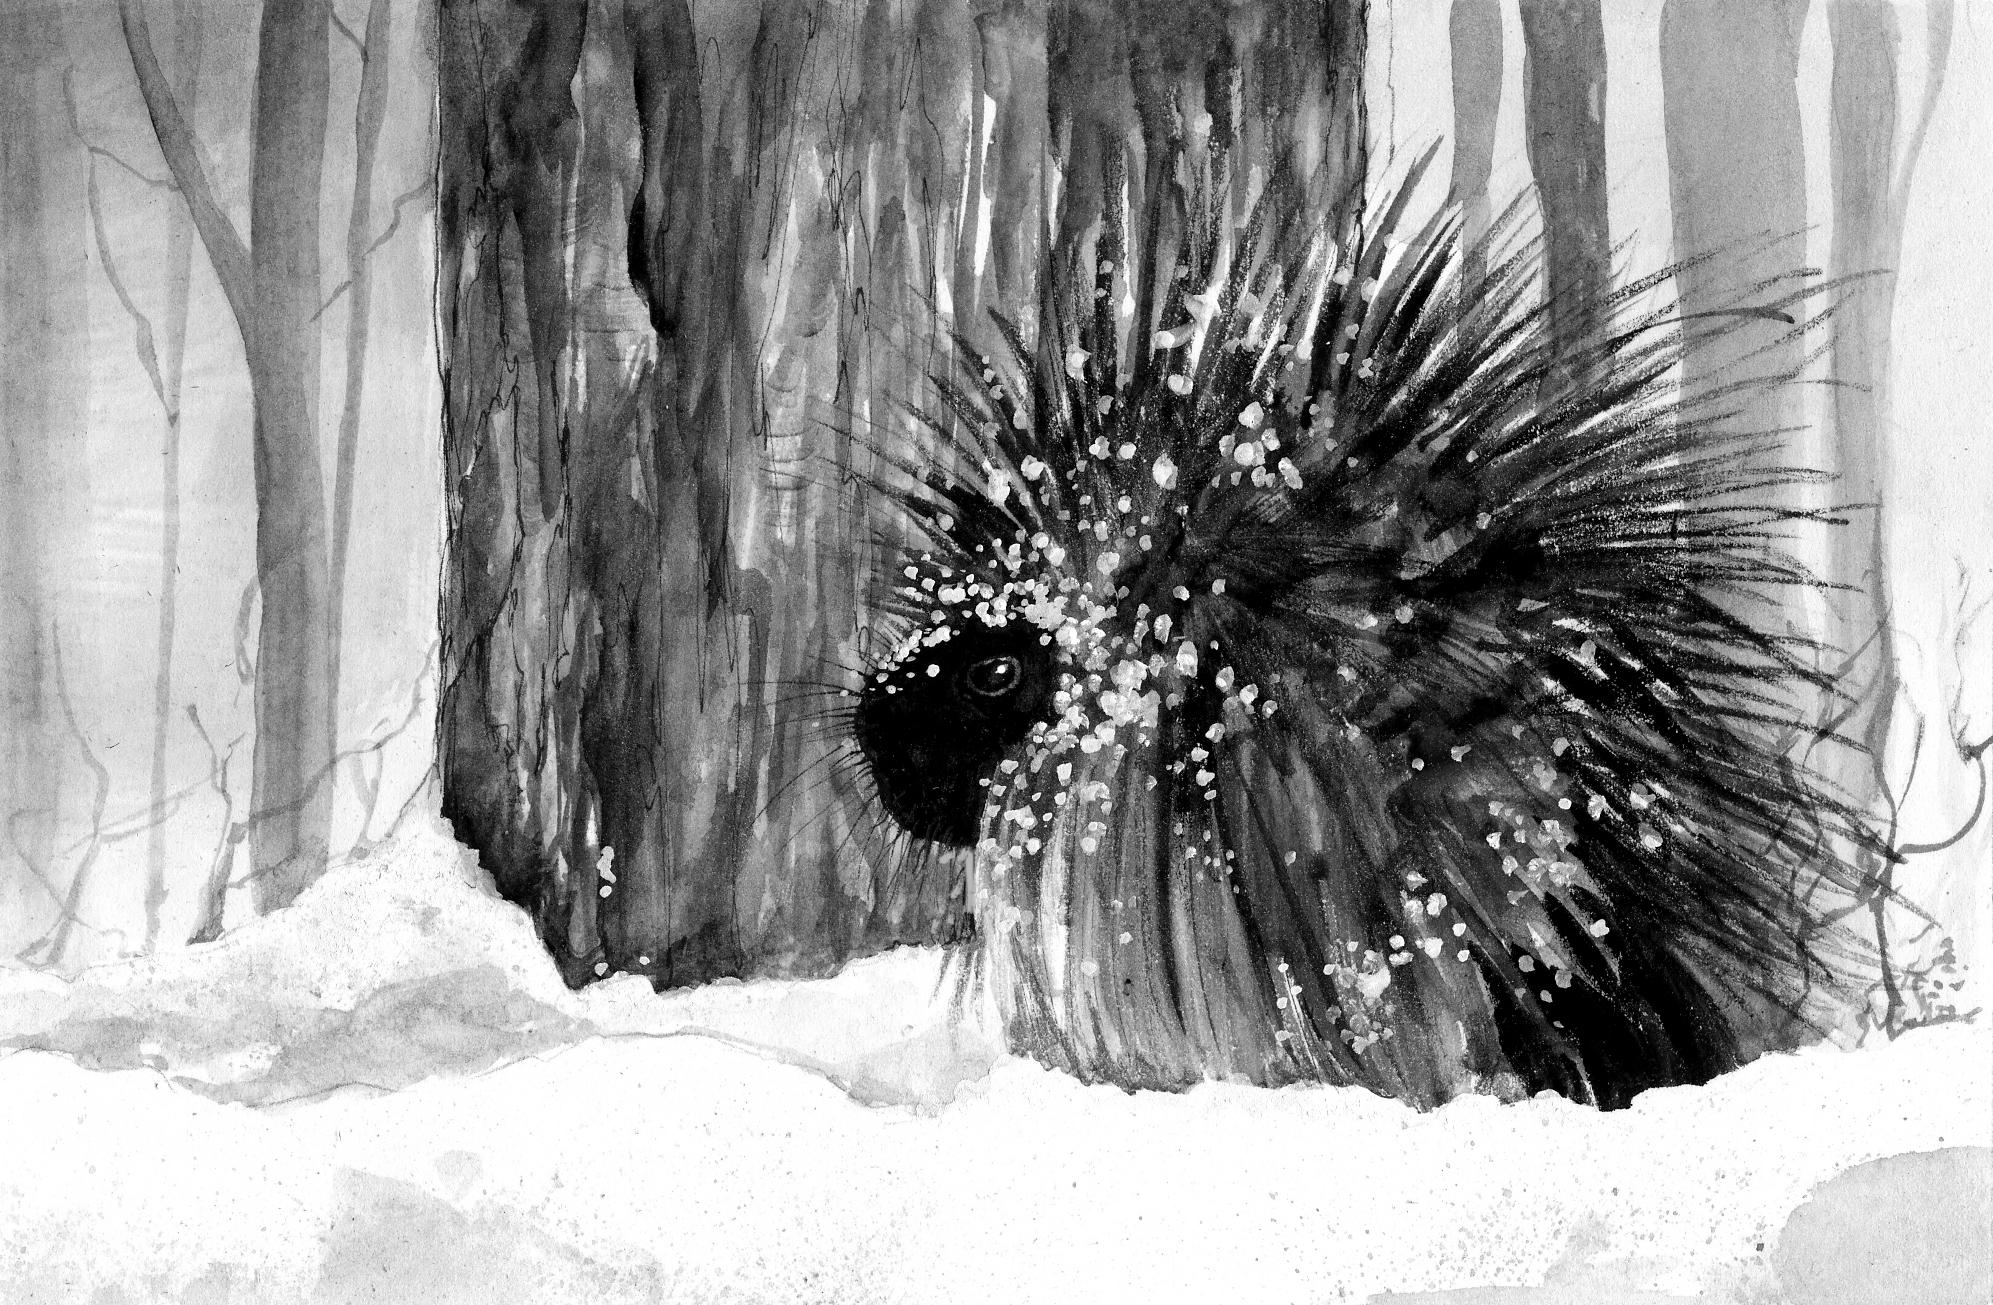 Porcupines: Waddling Through Winter